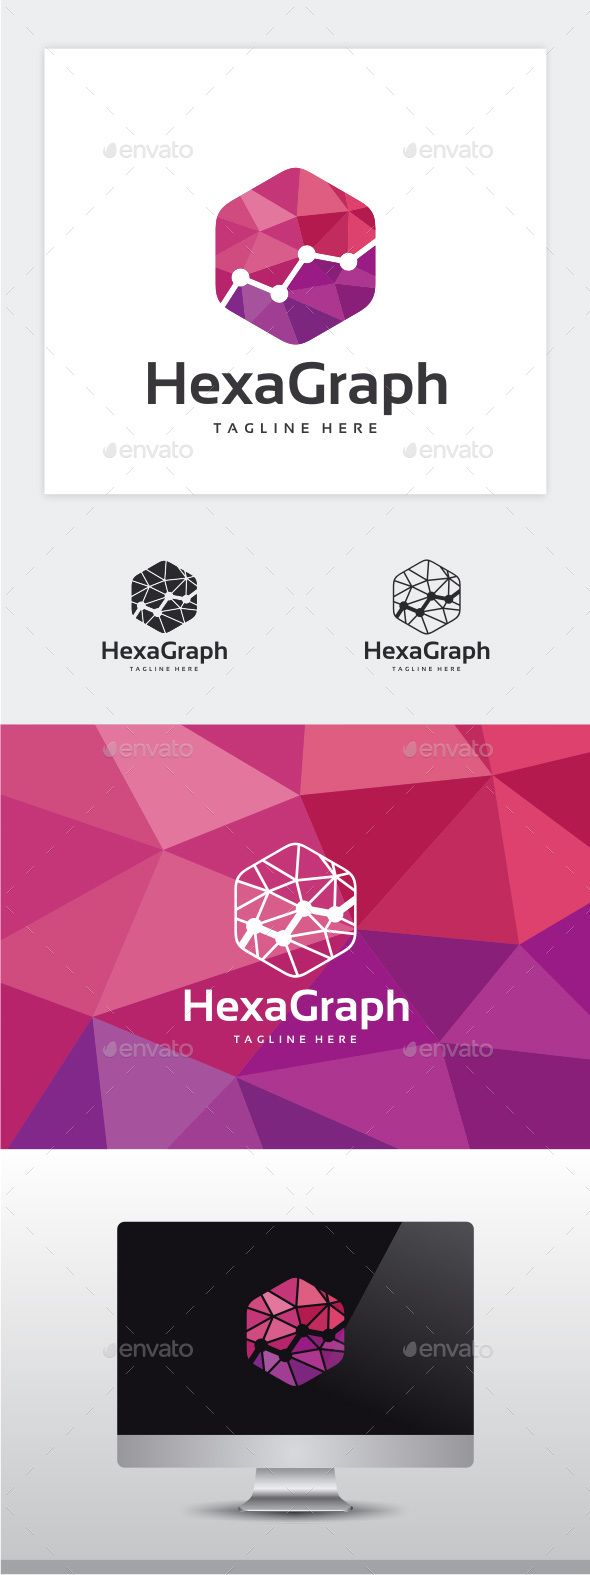 Hexa Graph Logo — Photoshop PSD #hexa #creative • Available here → https://graphicriver.net/item/hexa-graph-logo/14546714?ref=pxcr